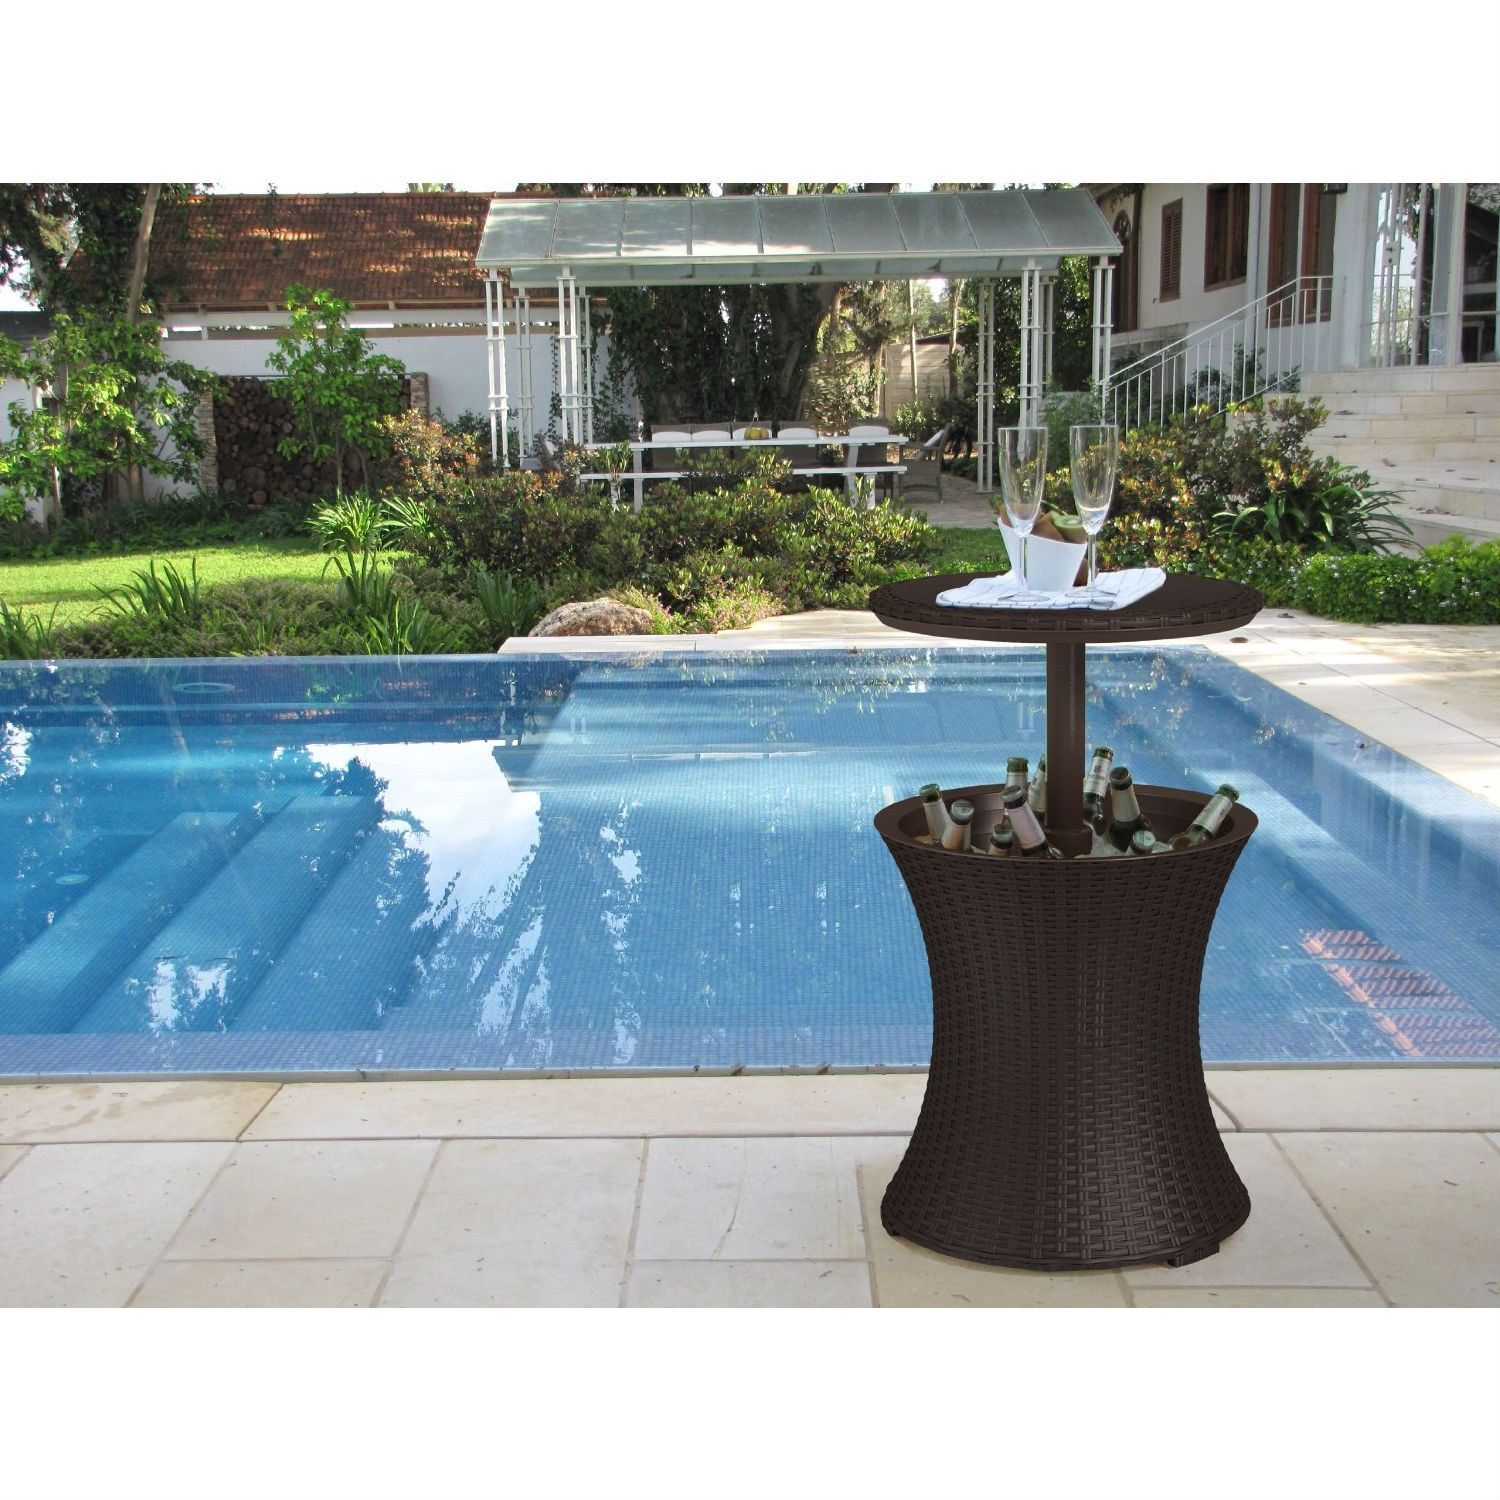 Outdoor Patio Pool Cocktail Table Cooler Bar In Brown Wicker Resin Hearts Attic Patio Cooler Outdoor Cooler Swimming Pools Backyard